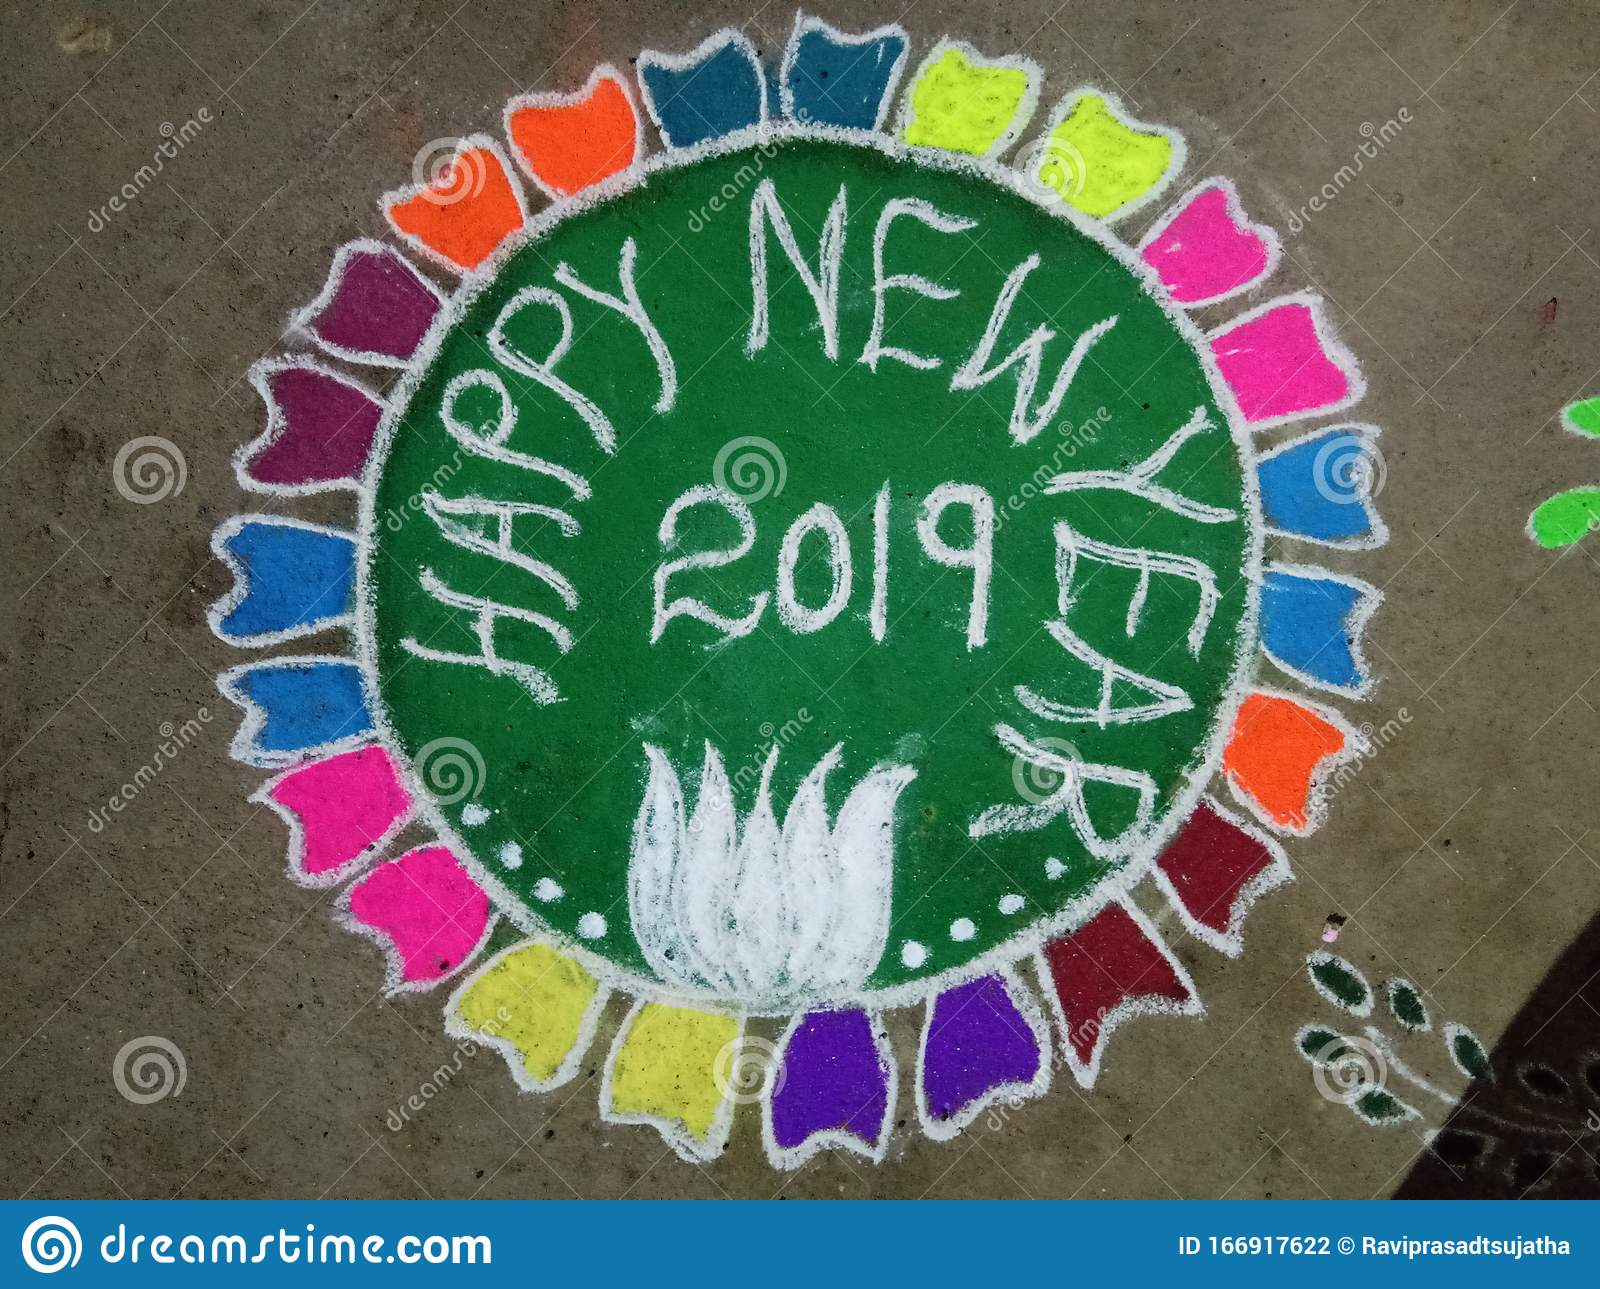 indian rangoli art new year picture stock photo image of indian year 166917622 dreamstime com